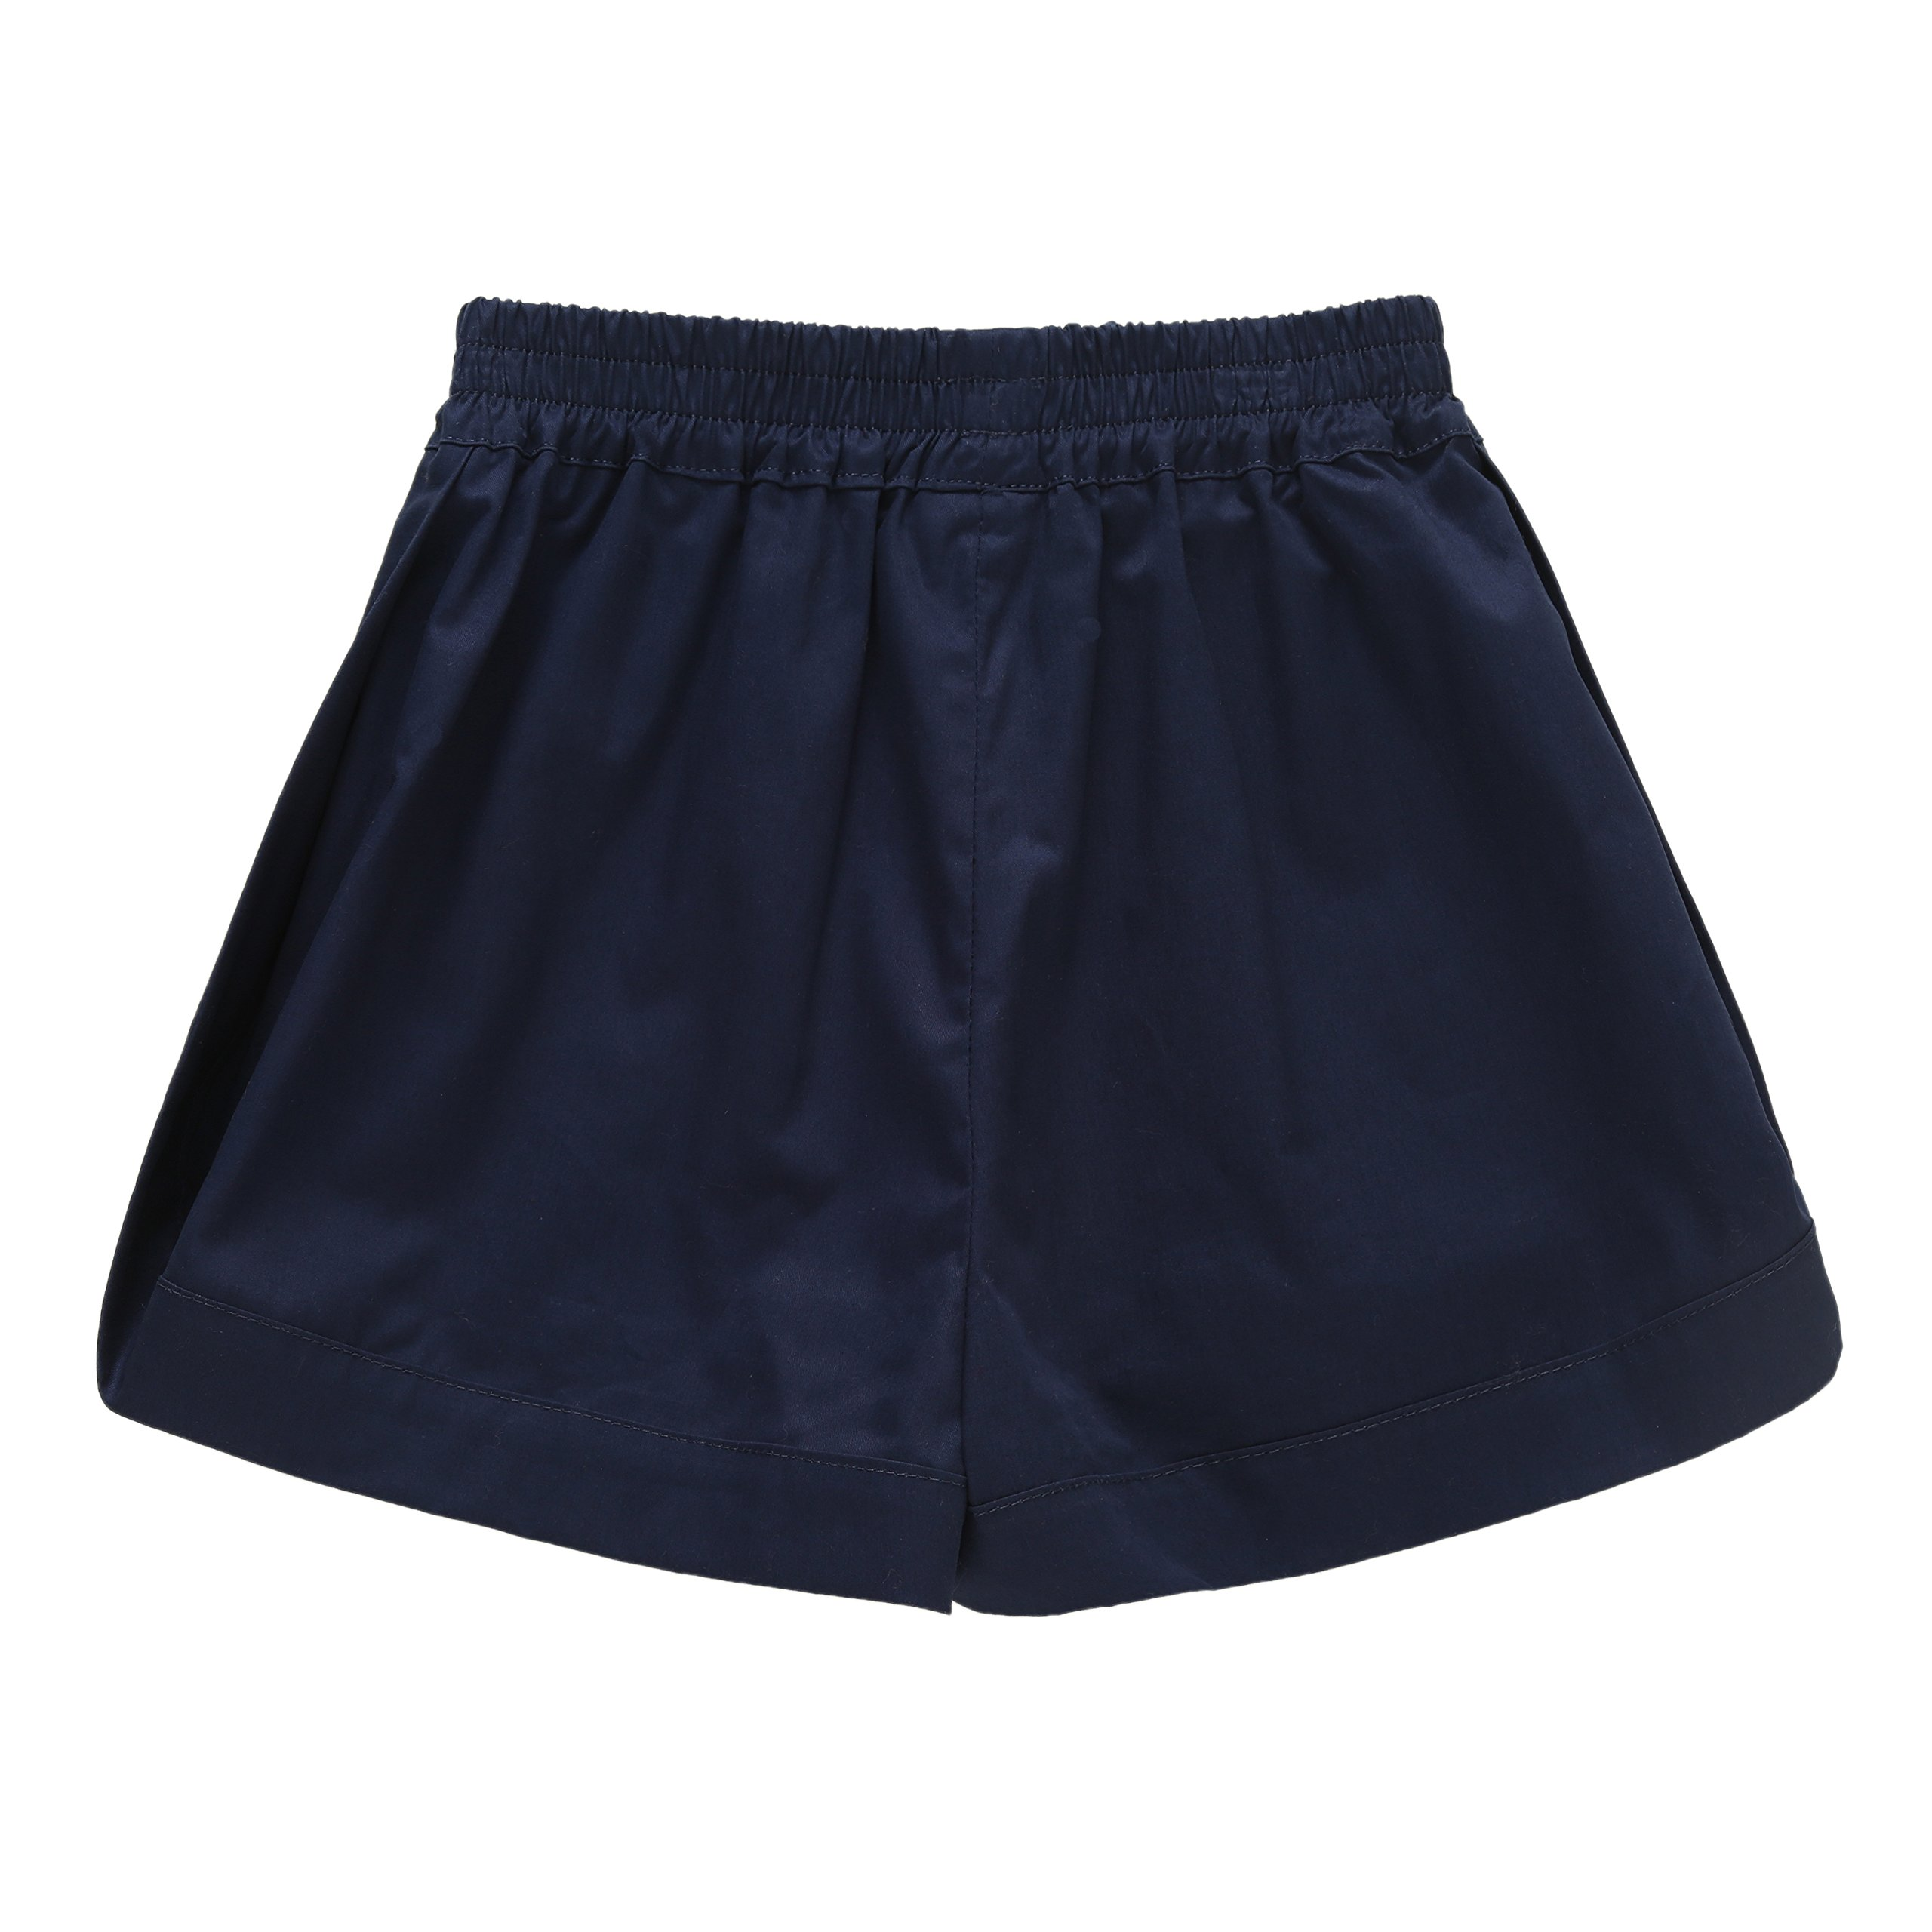 Richie House Big Girls' Summer Short Pants with Bow RH2288-A-12 by Richie House (Image #2)